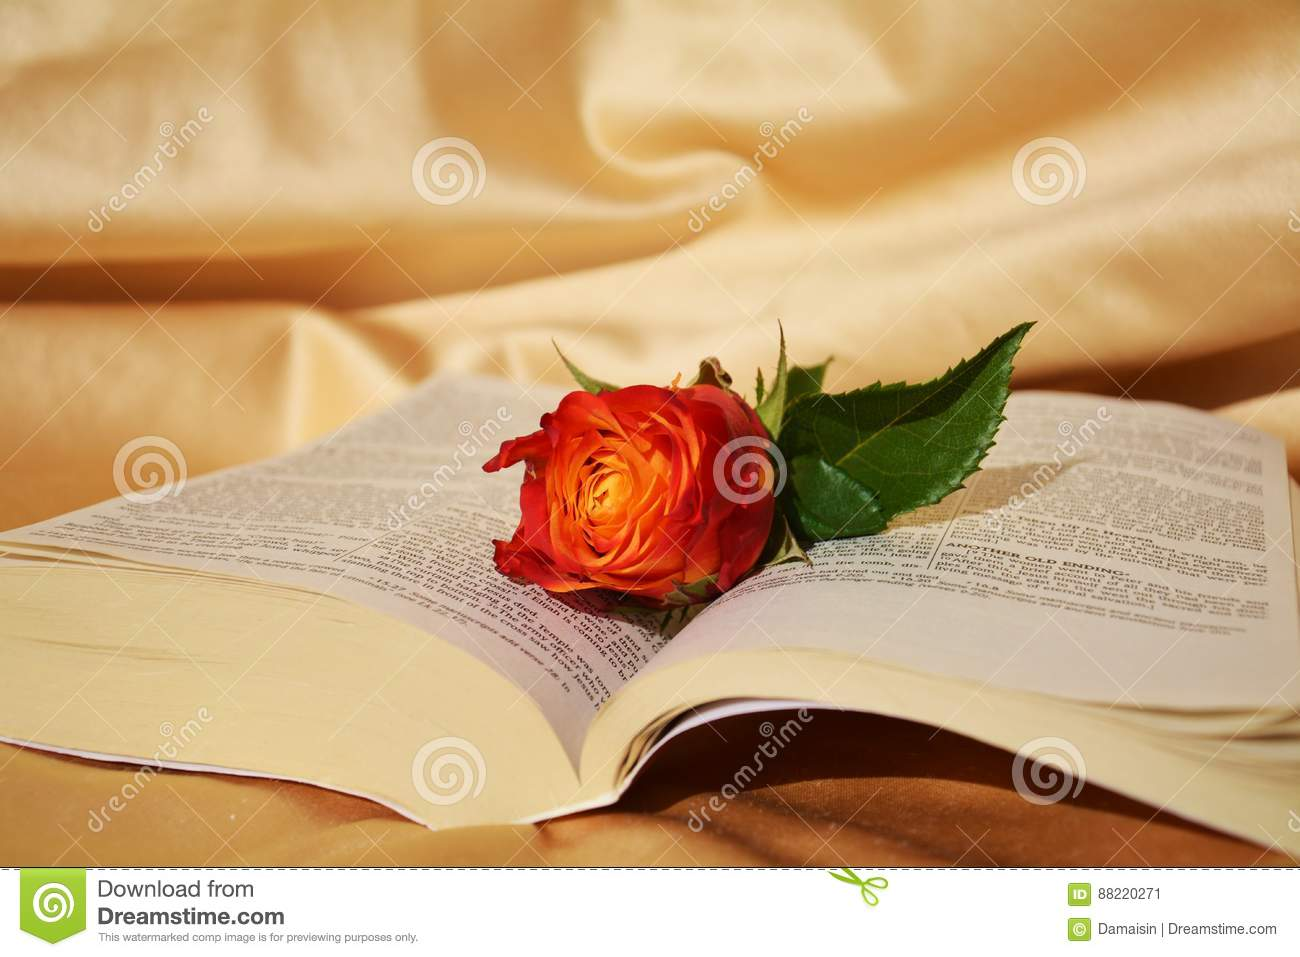 Rose and the Bible